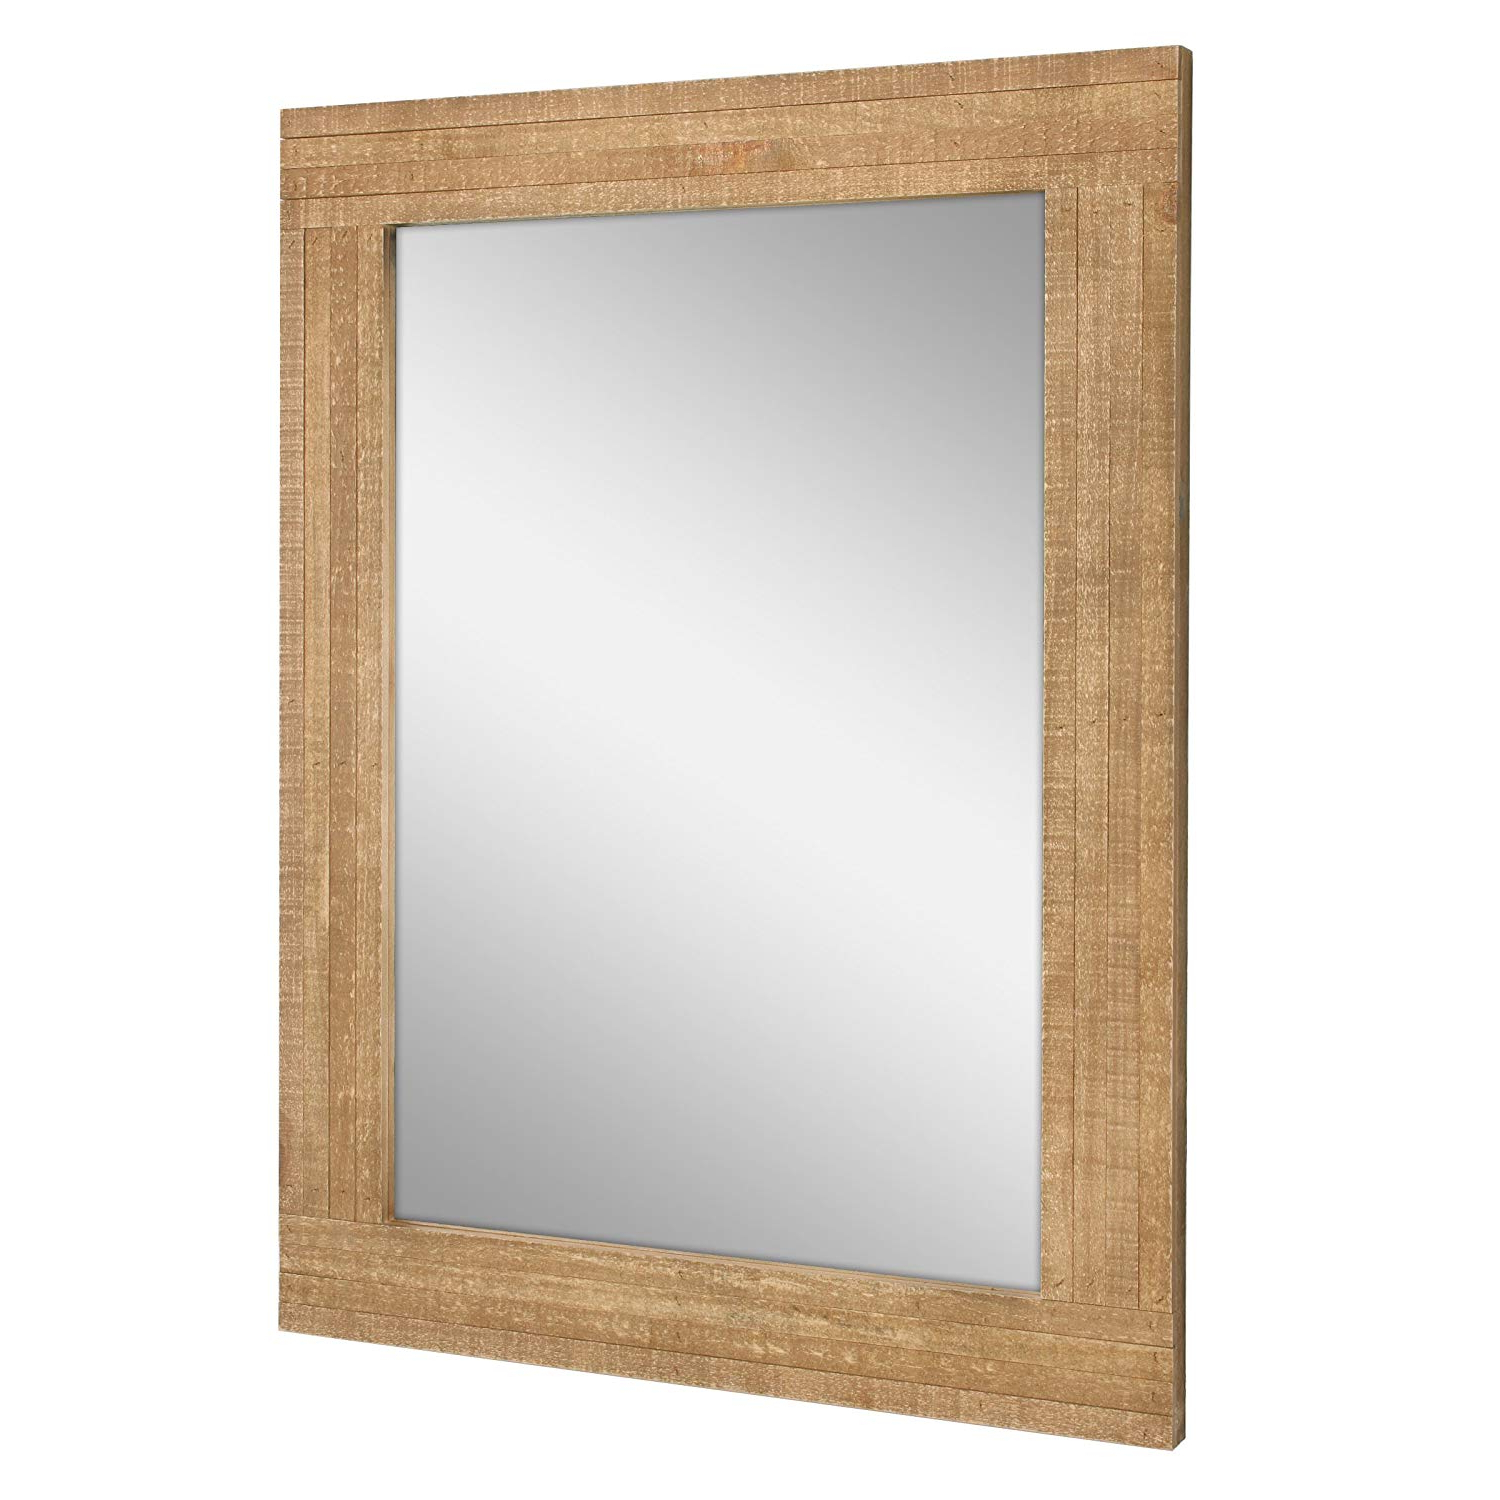 Most Current Entry Wall Mirrors Throughout Stonebriar Rustic Rectangular Natural Wood Frame Hanging Wall Mirror, Farmhouse Decor For The Living Room, Bedroom, Bathroom, Office, And Entryway (View 15 of 20)